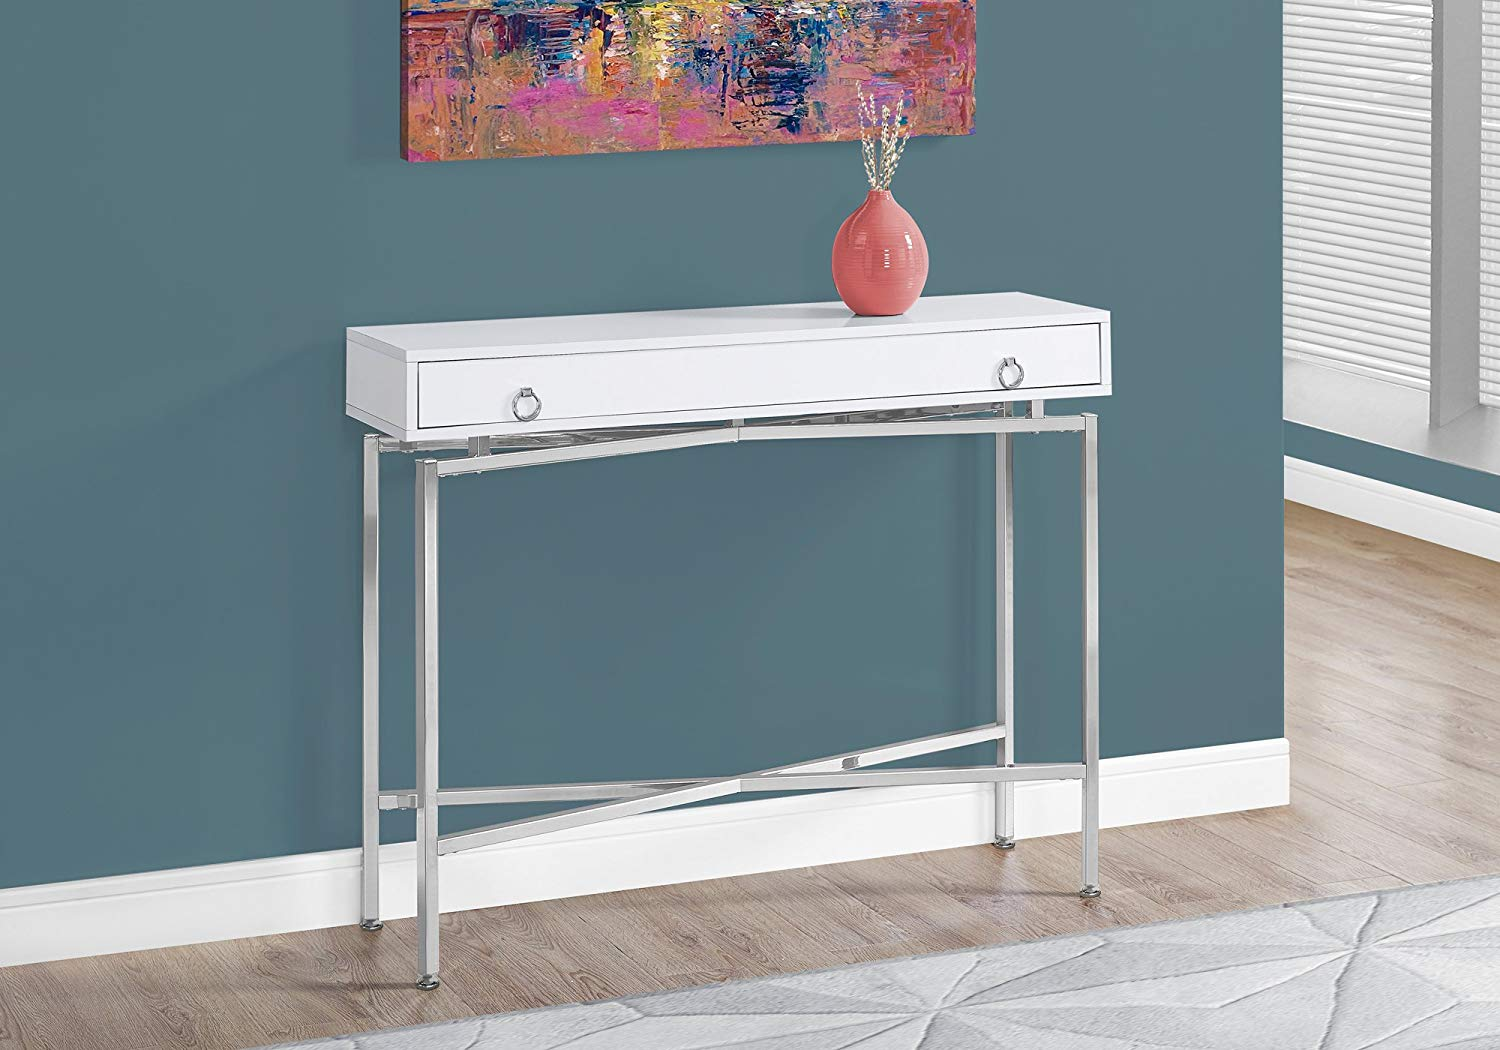 furniture monarch hall console accent table cappuccino specialties glossy white chrome gold bedside lamps cabinet door knobs round glass and metal coffee treads wooden mosaic